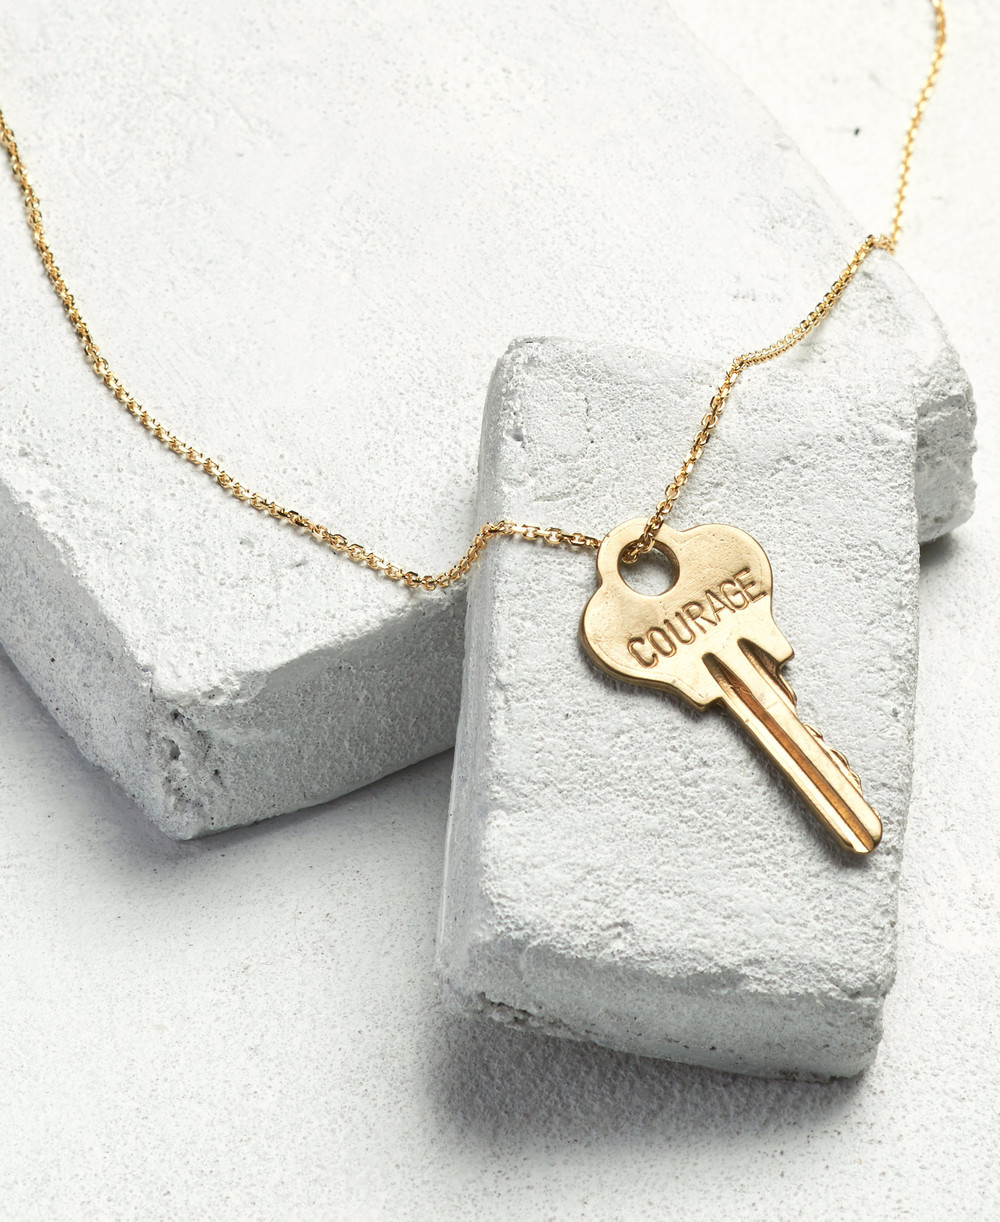 The Giving Keys, Dainty Necklace    Image from: The Giving Keys webpage, www.thegivingkeys.com